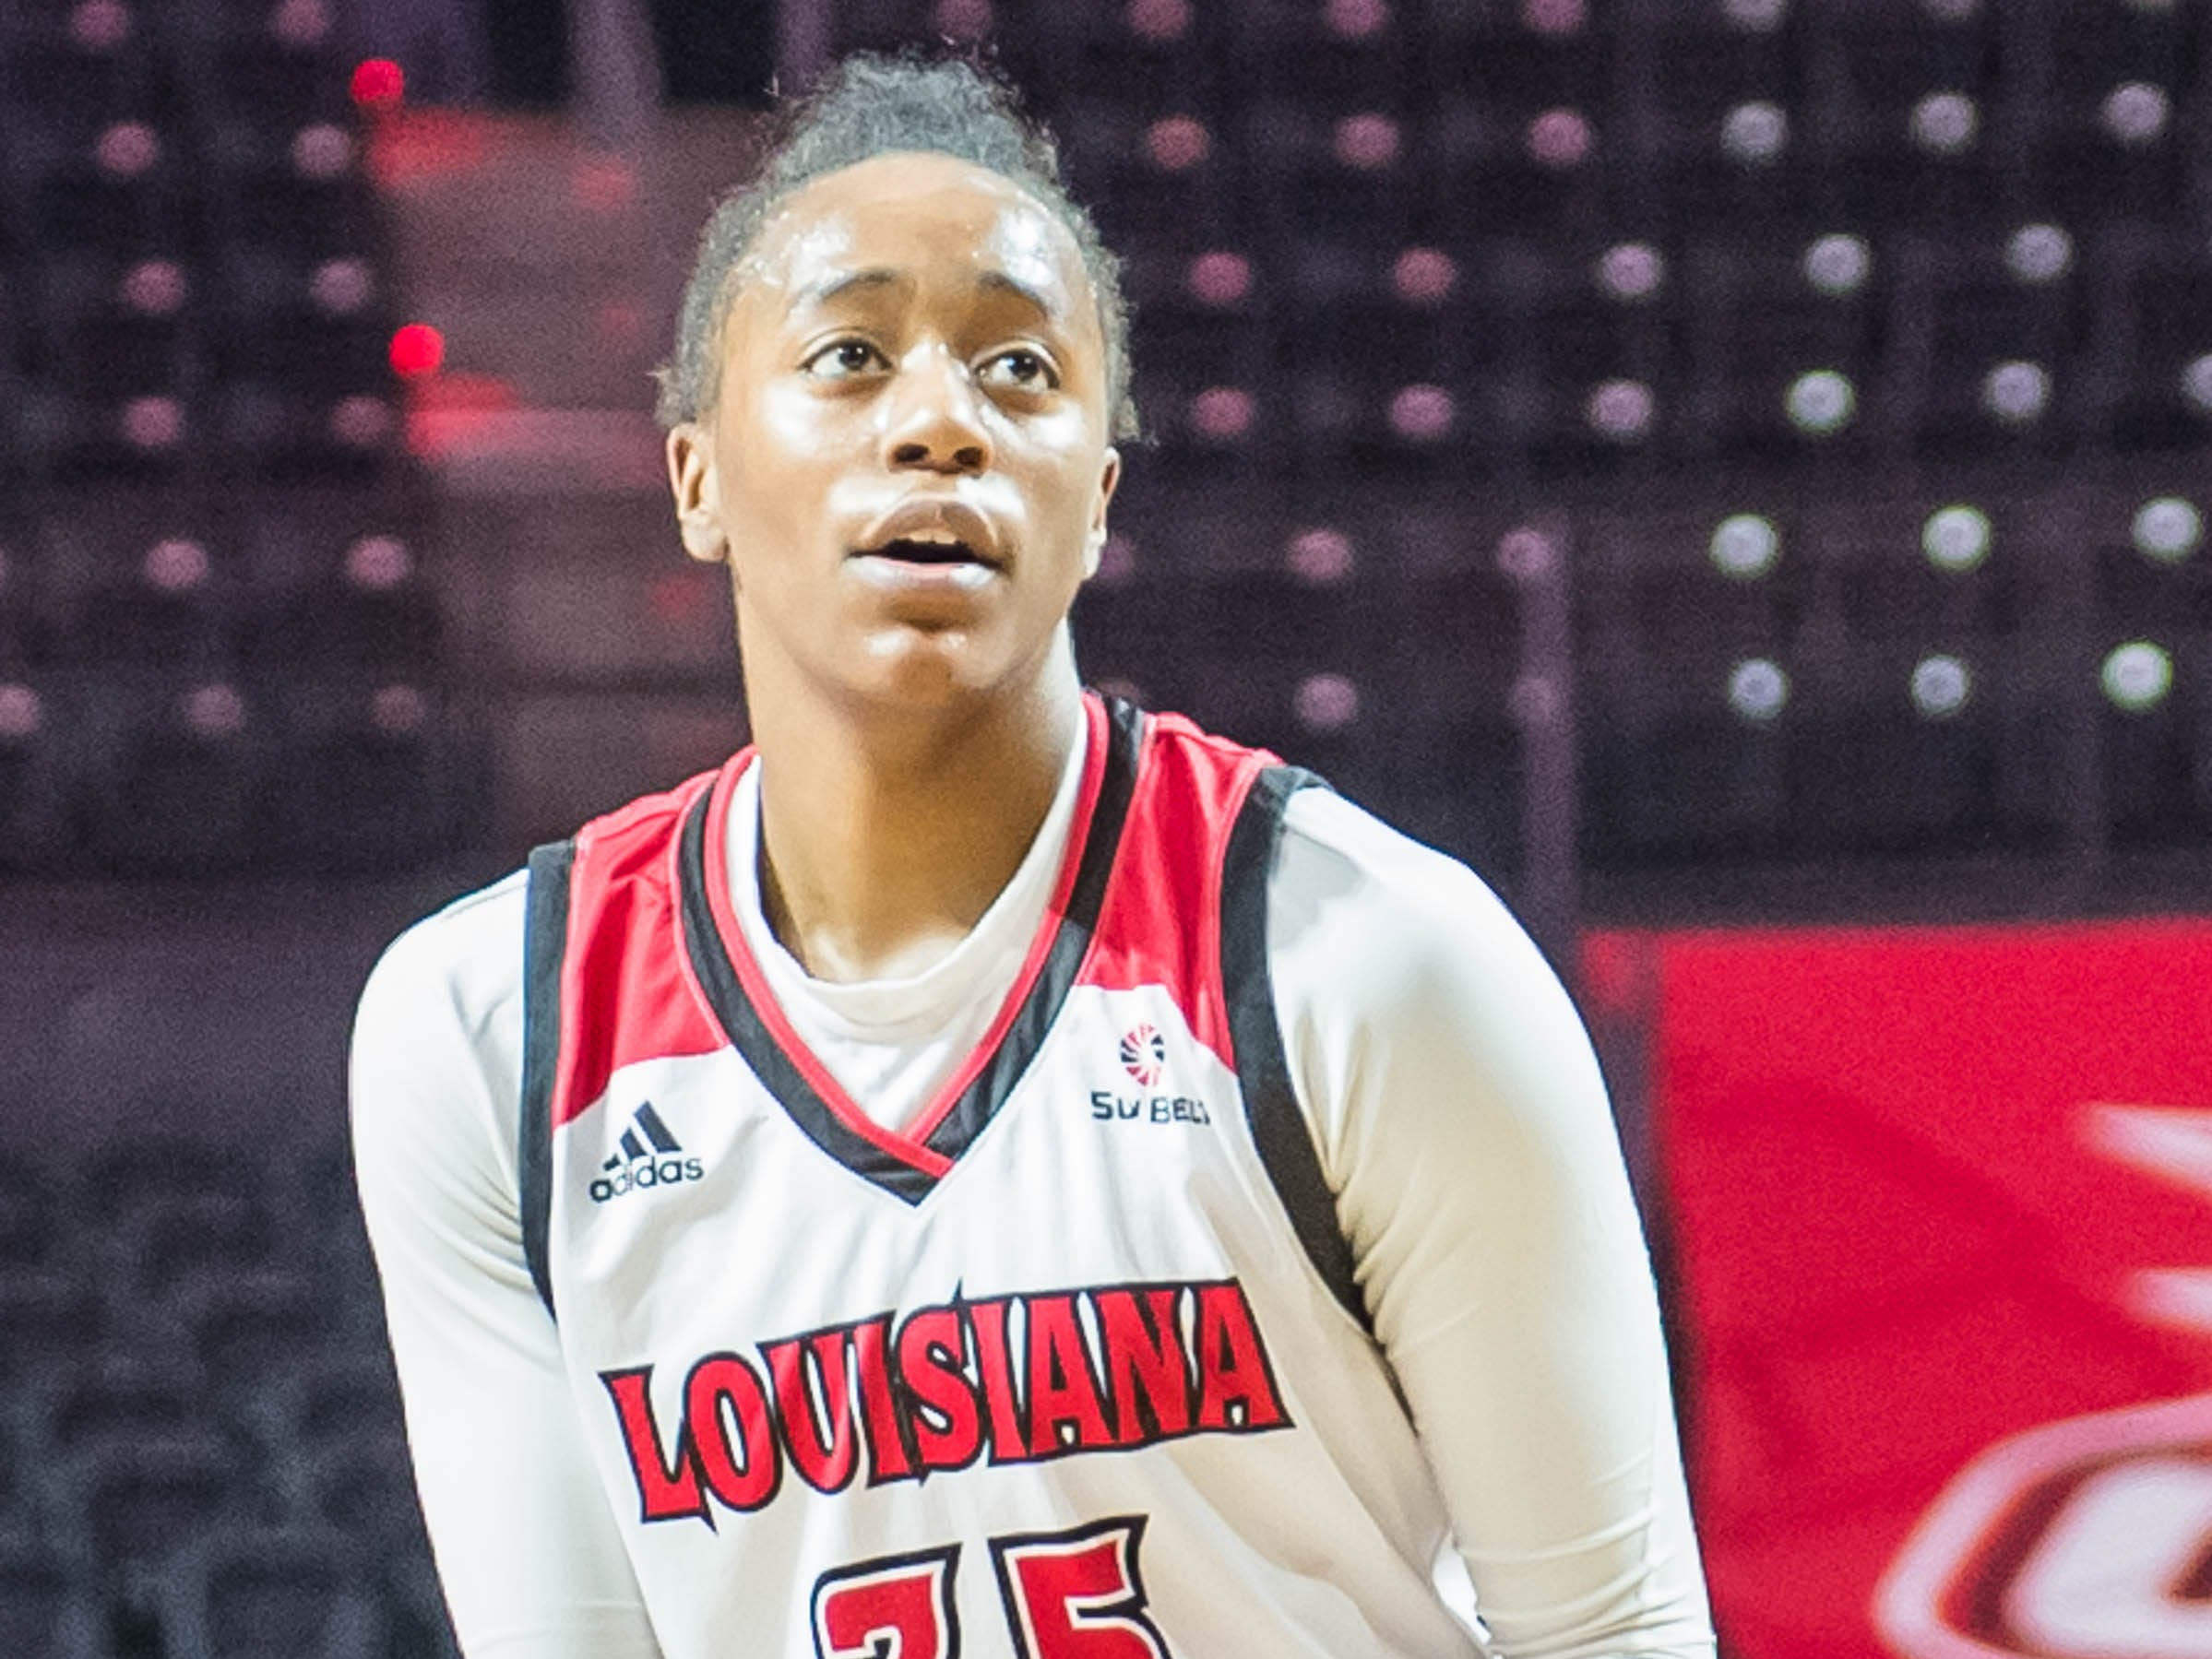 Cajuns center Ty'Reona Doucet with the free throw as the Cajuns women's basketball team plays the Arkansas State Red Wolves at the Cajundome on Saturday, March 9, 2019.